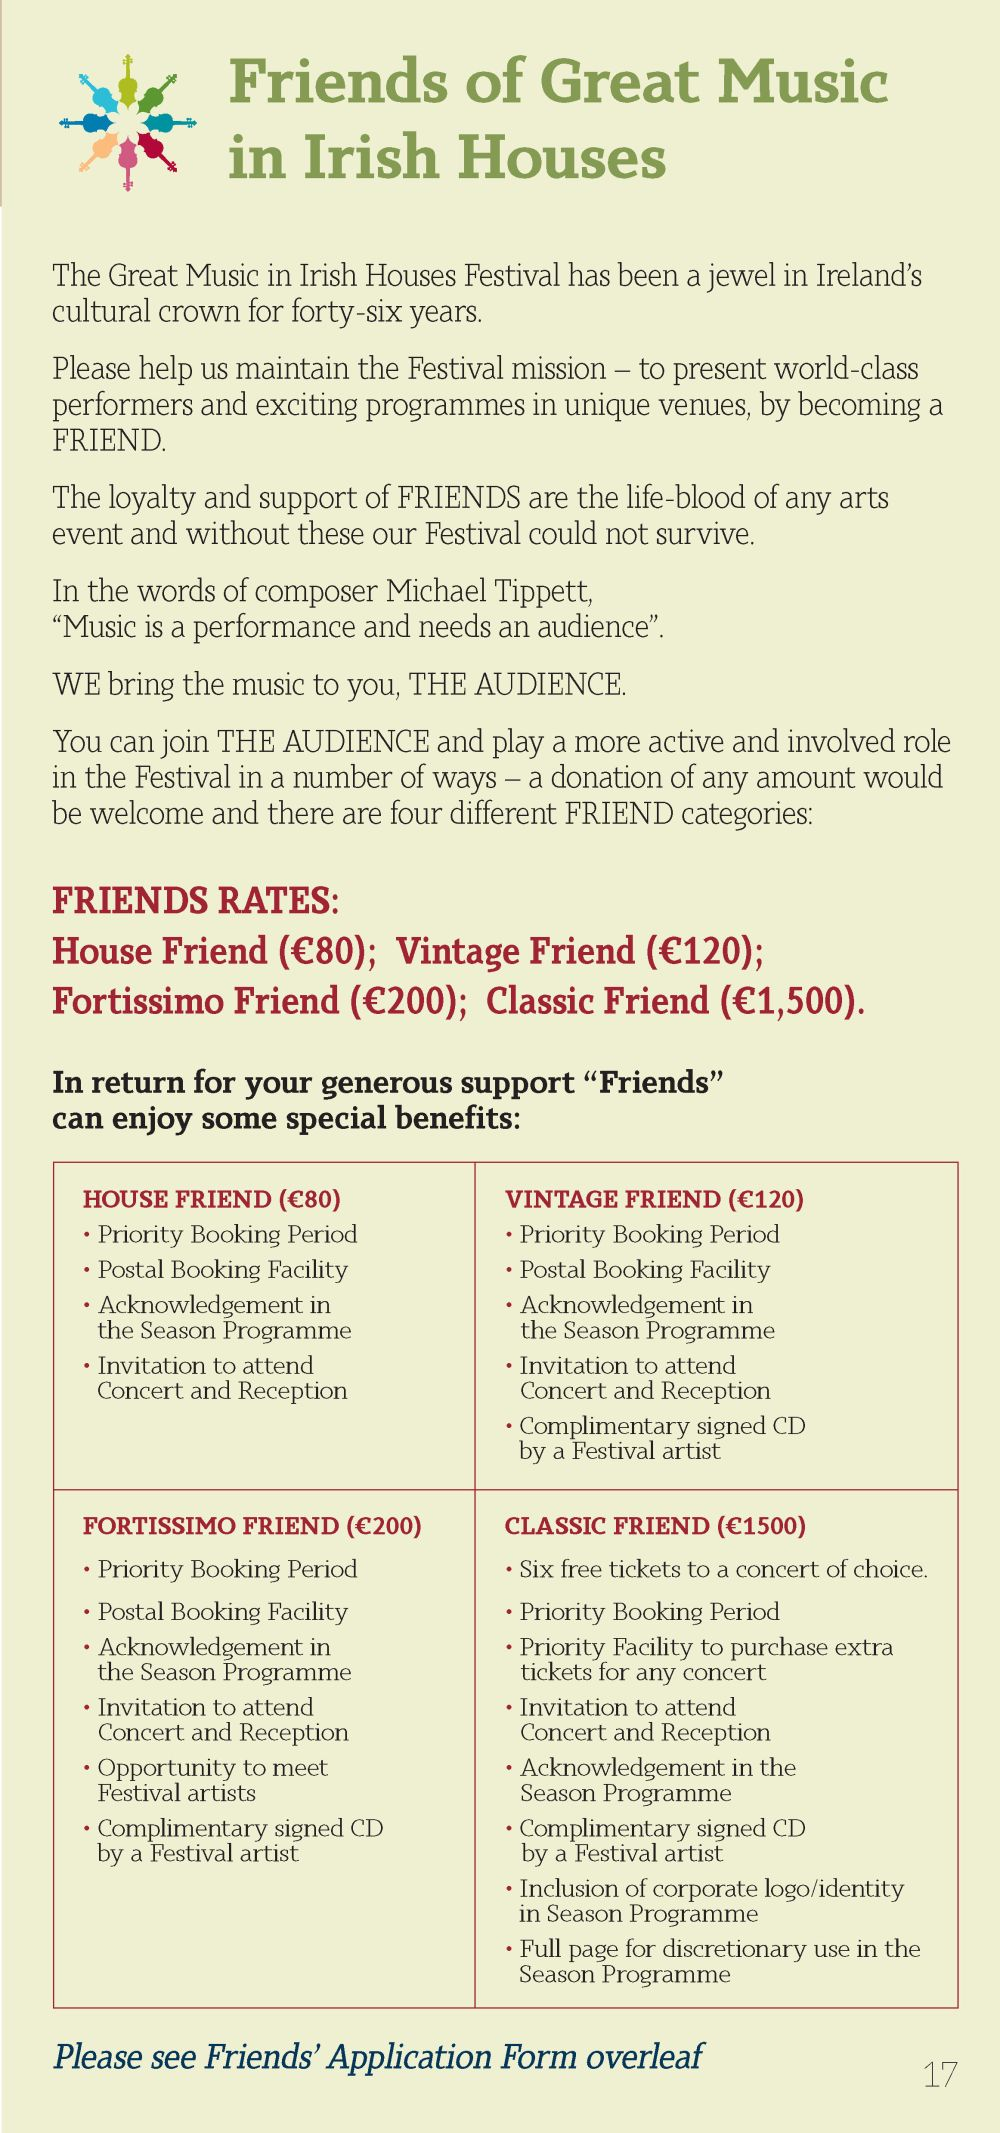 GMIIH Festival Brochure 2016 - Friends info